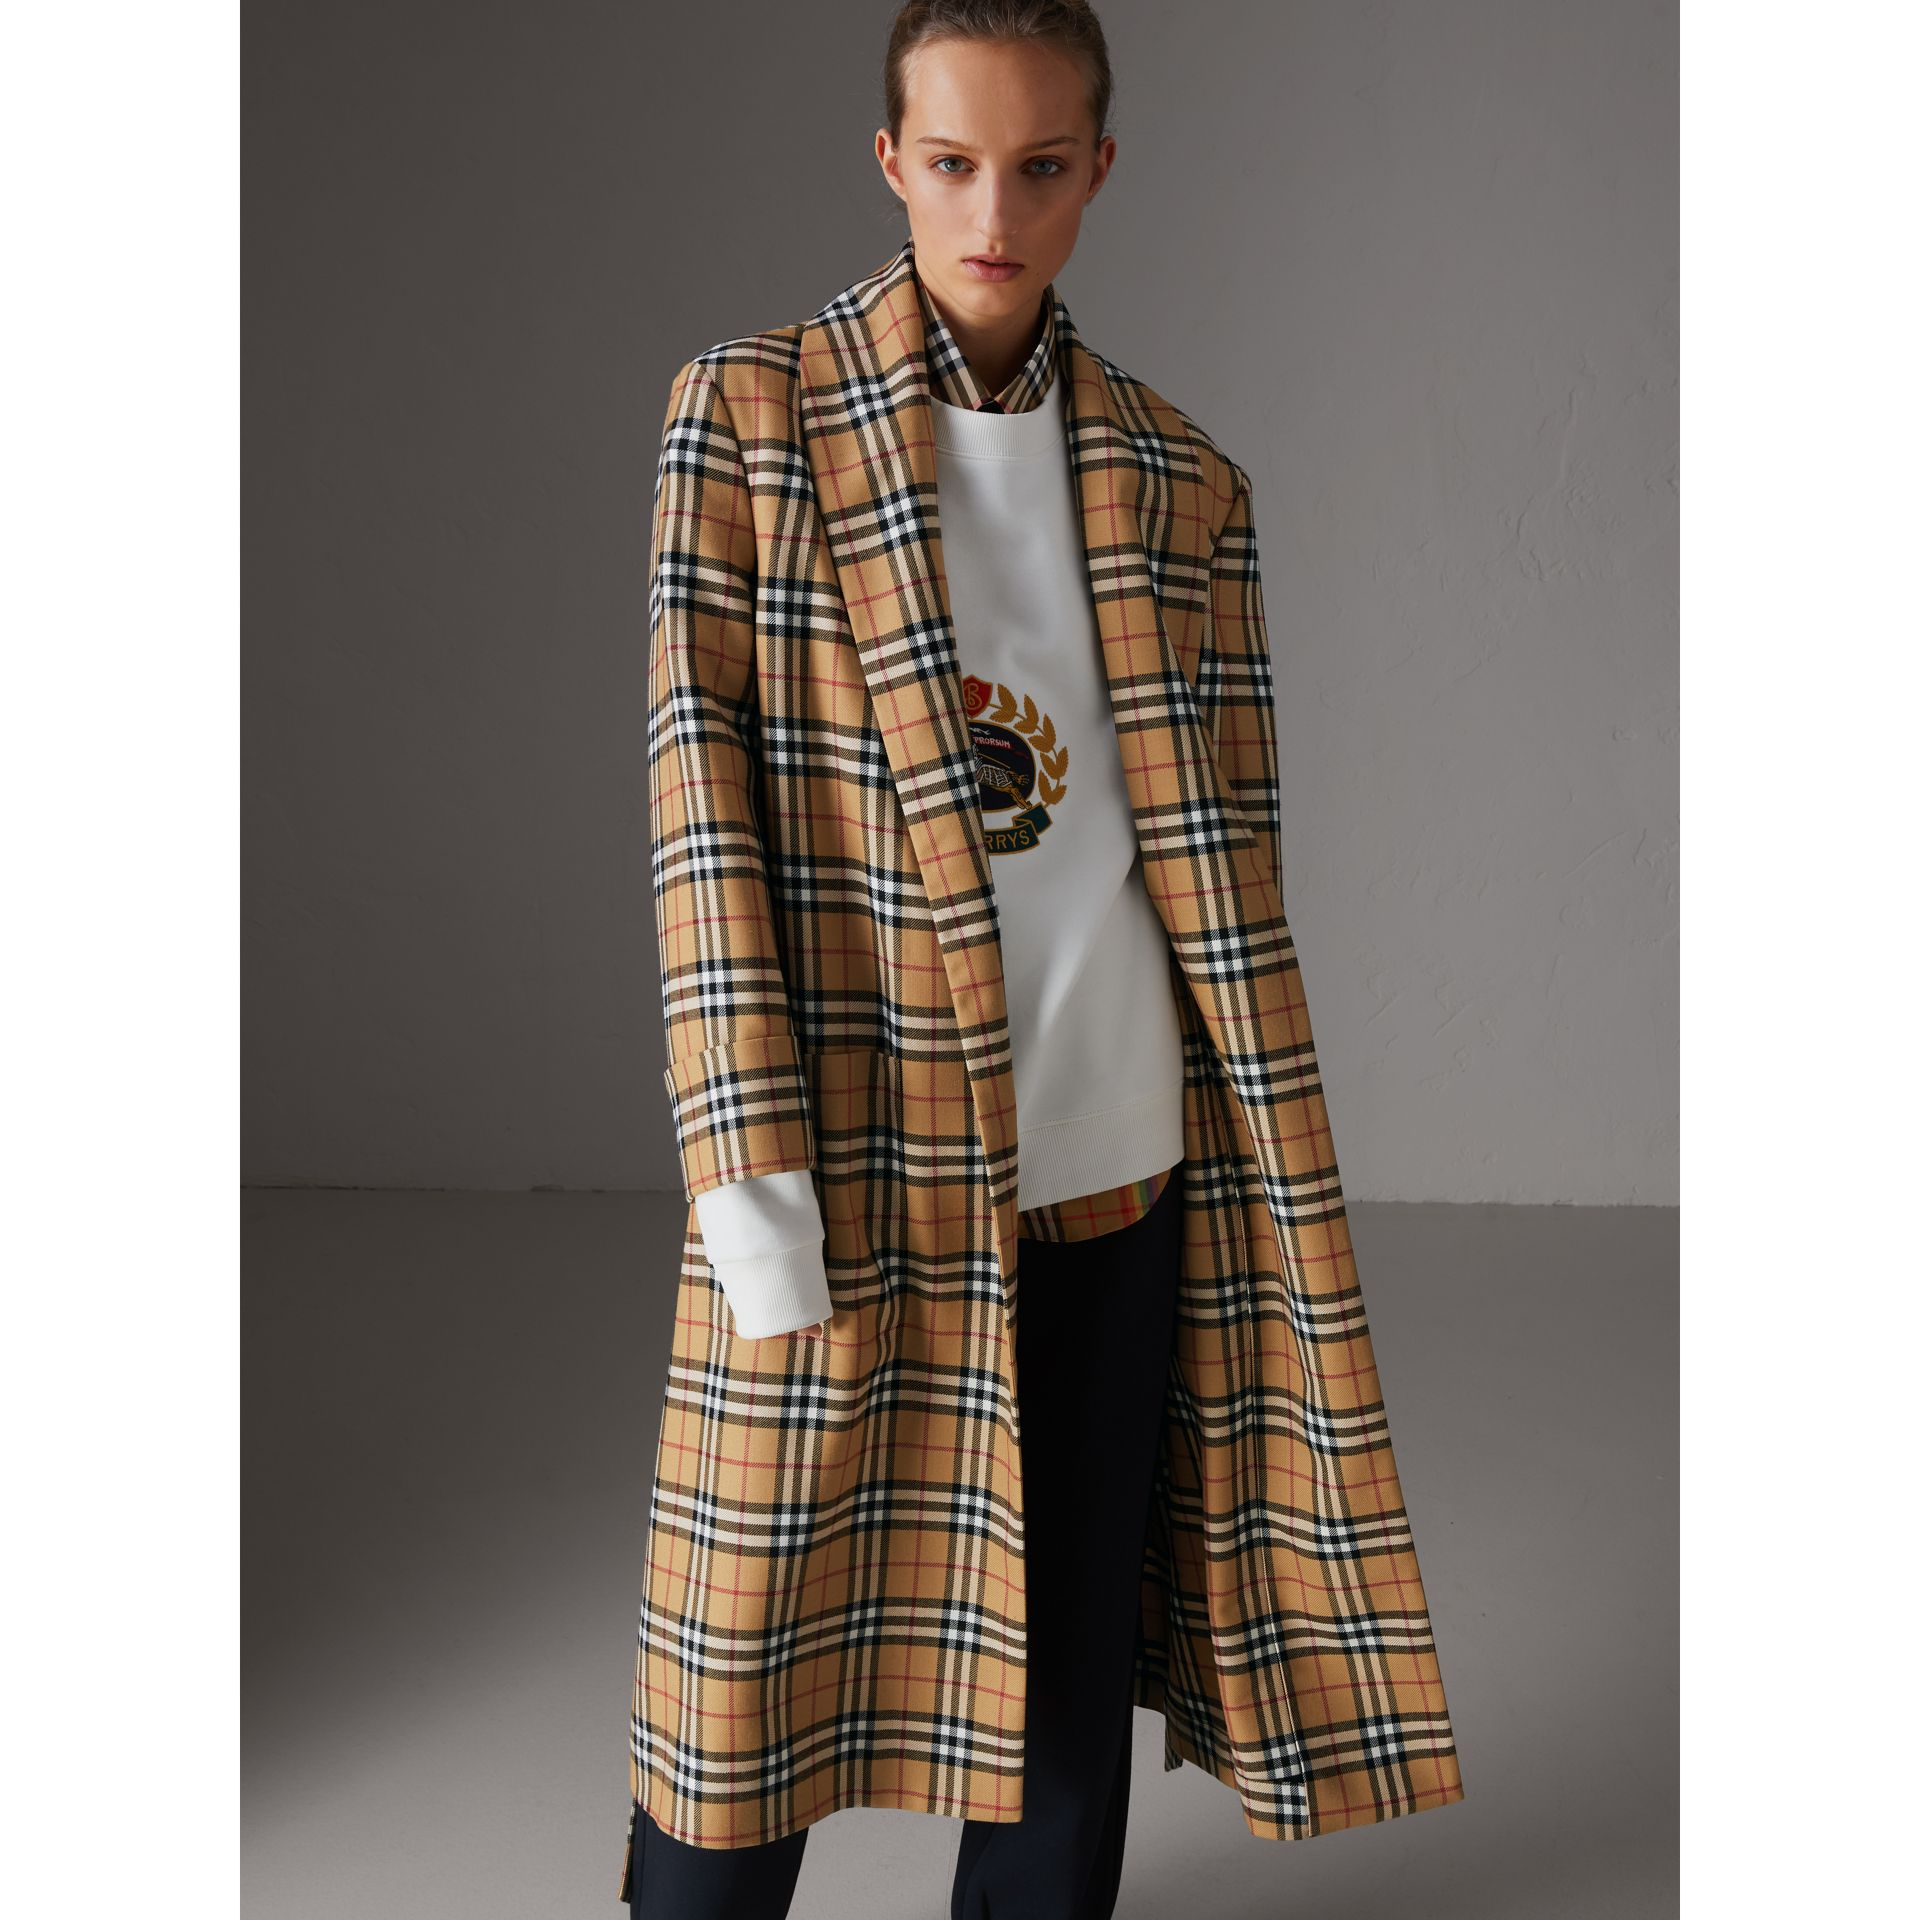 Manteau peignoir à motif Vintage check revisité (Jaune Antique) - Femme | Burberry - photo de la galerie 6